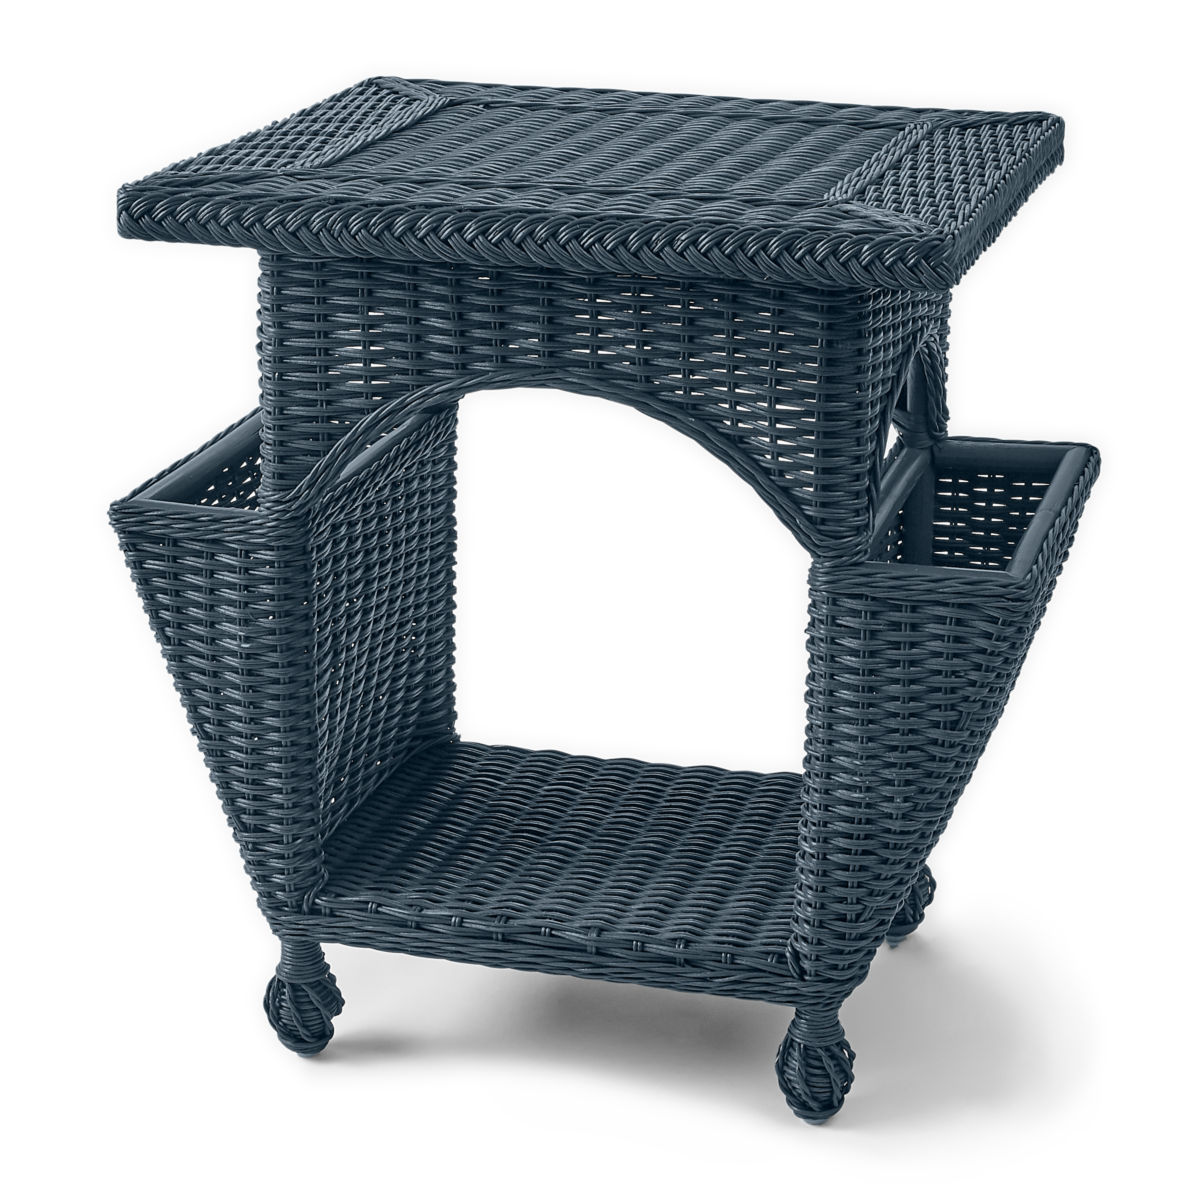 Indoor Wicker Chair And Reading Table - NAVYimage number 0